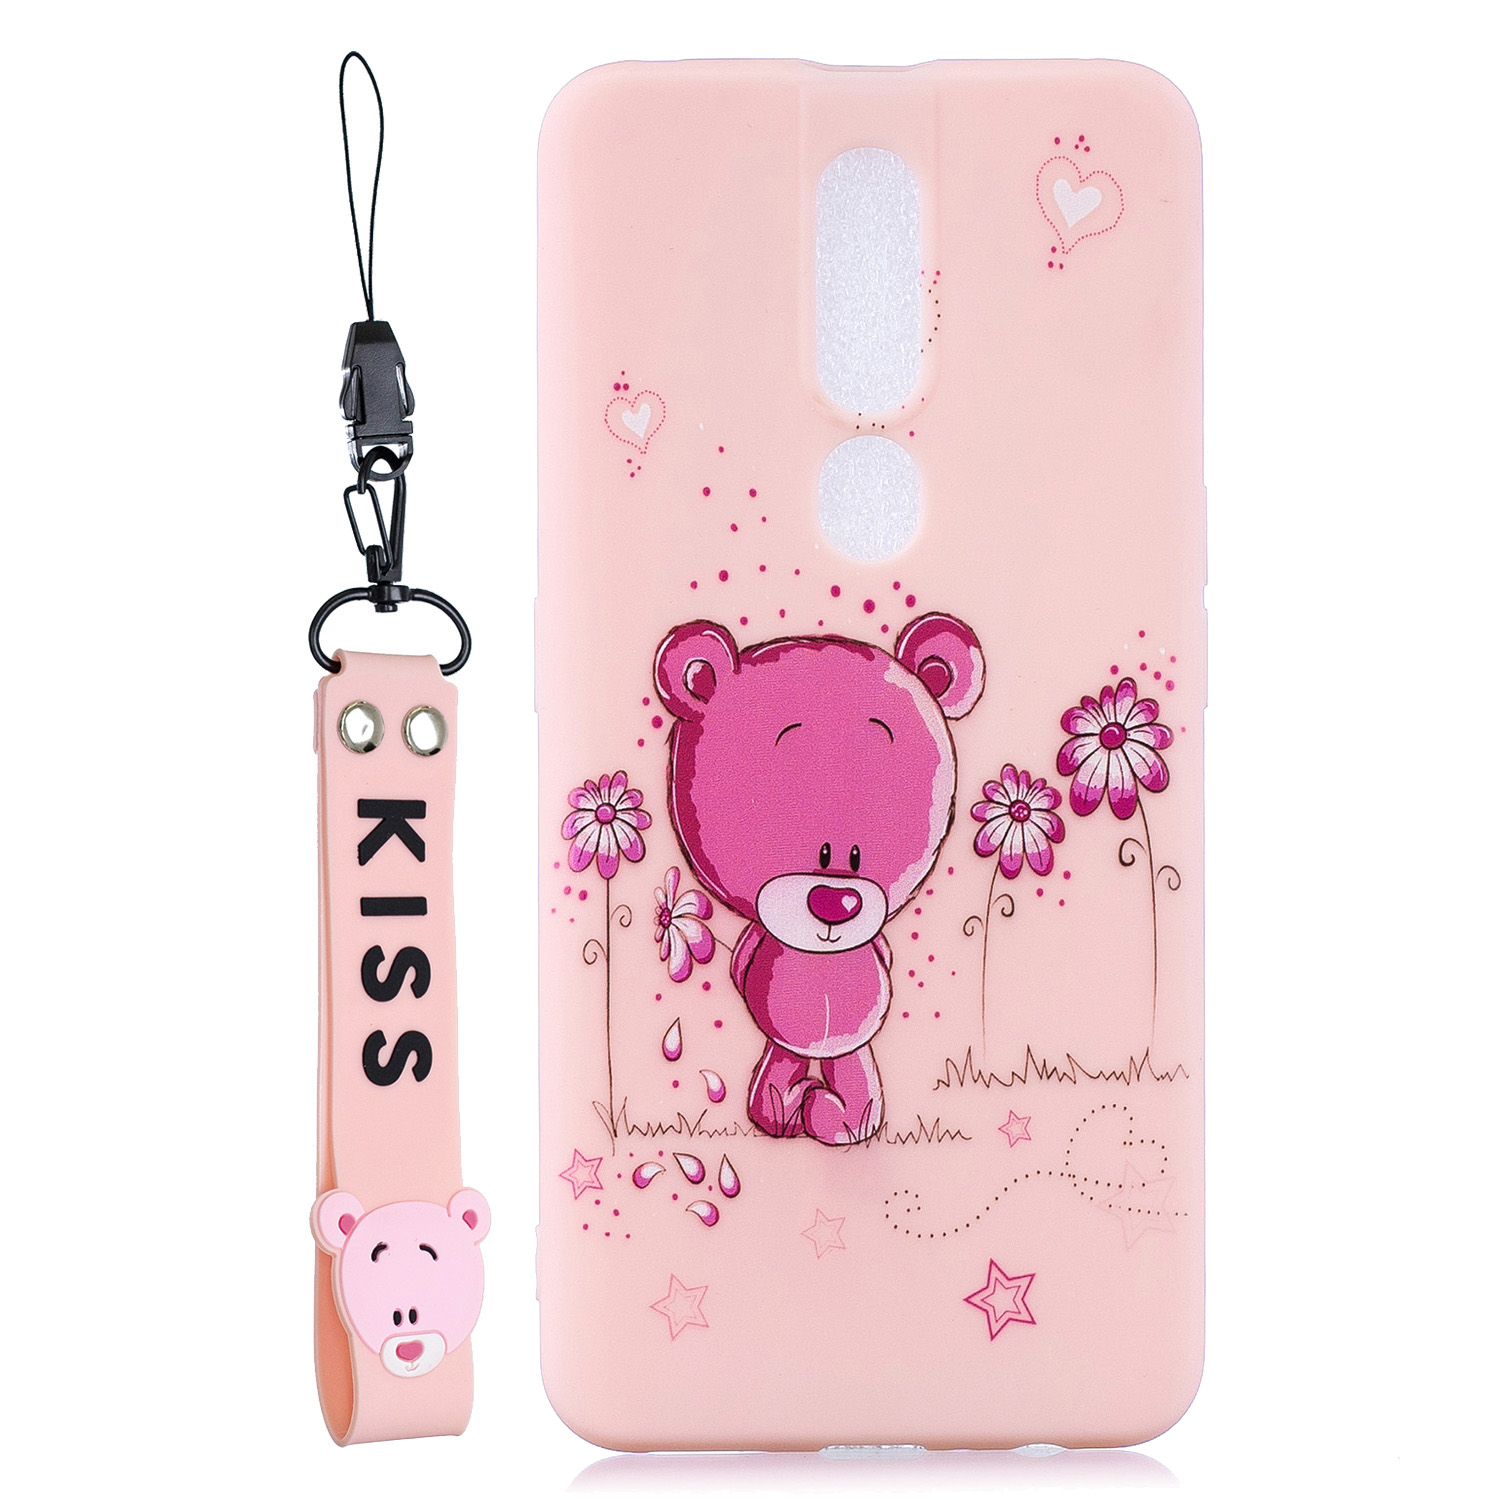 For OPPO F11 PRO Cartoon Lovely Coloured Painted Soft TPU Back Cover Non-slip Shockproof Full Protective Case with Lanyard Light pink